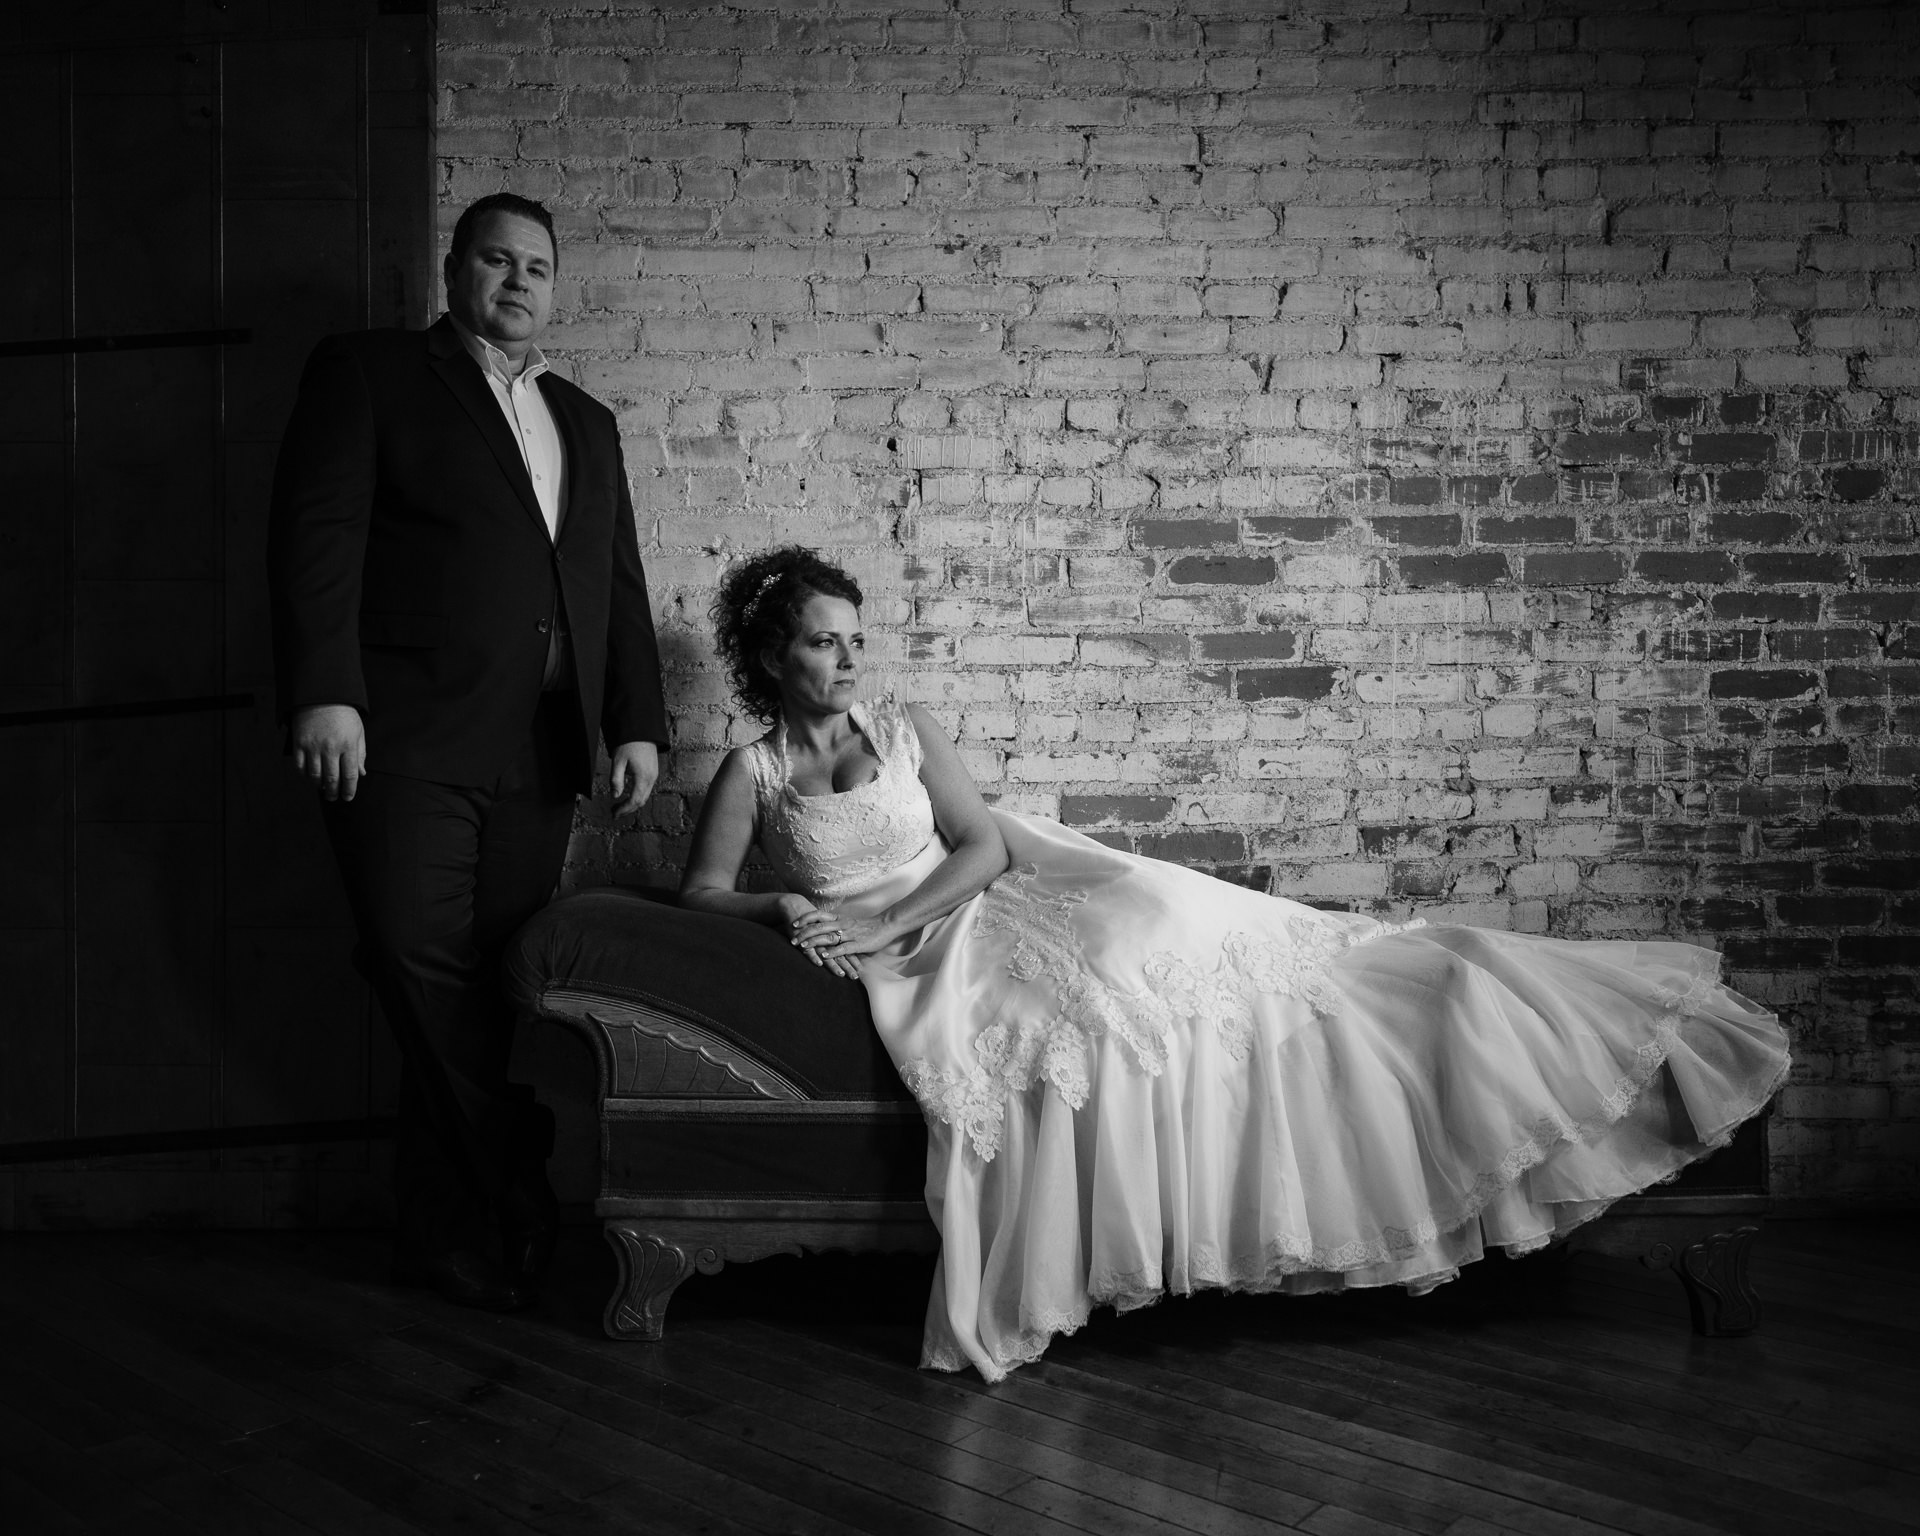 Grant Beachy wedding photographer goshen indiana elkhart south bend-051.jpg